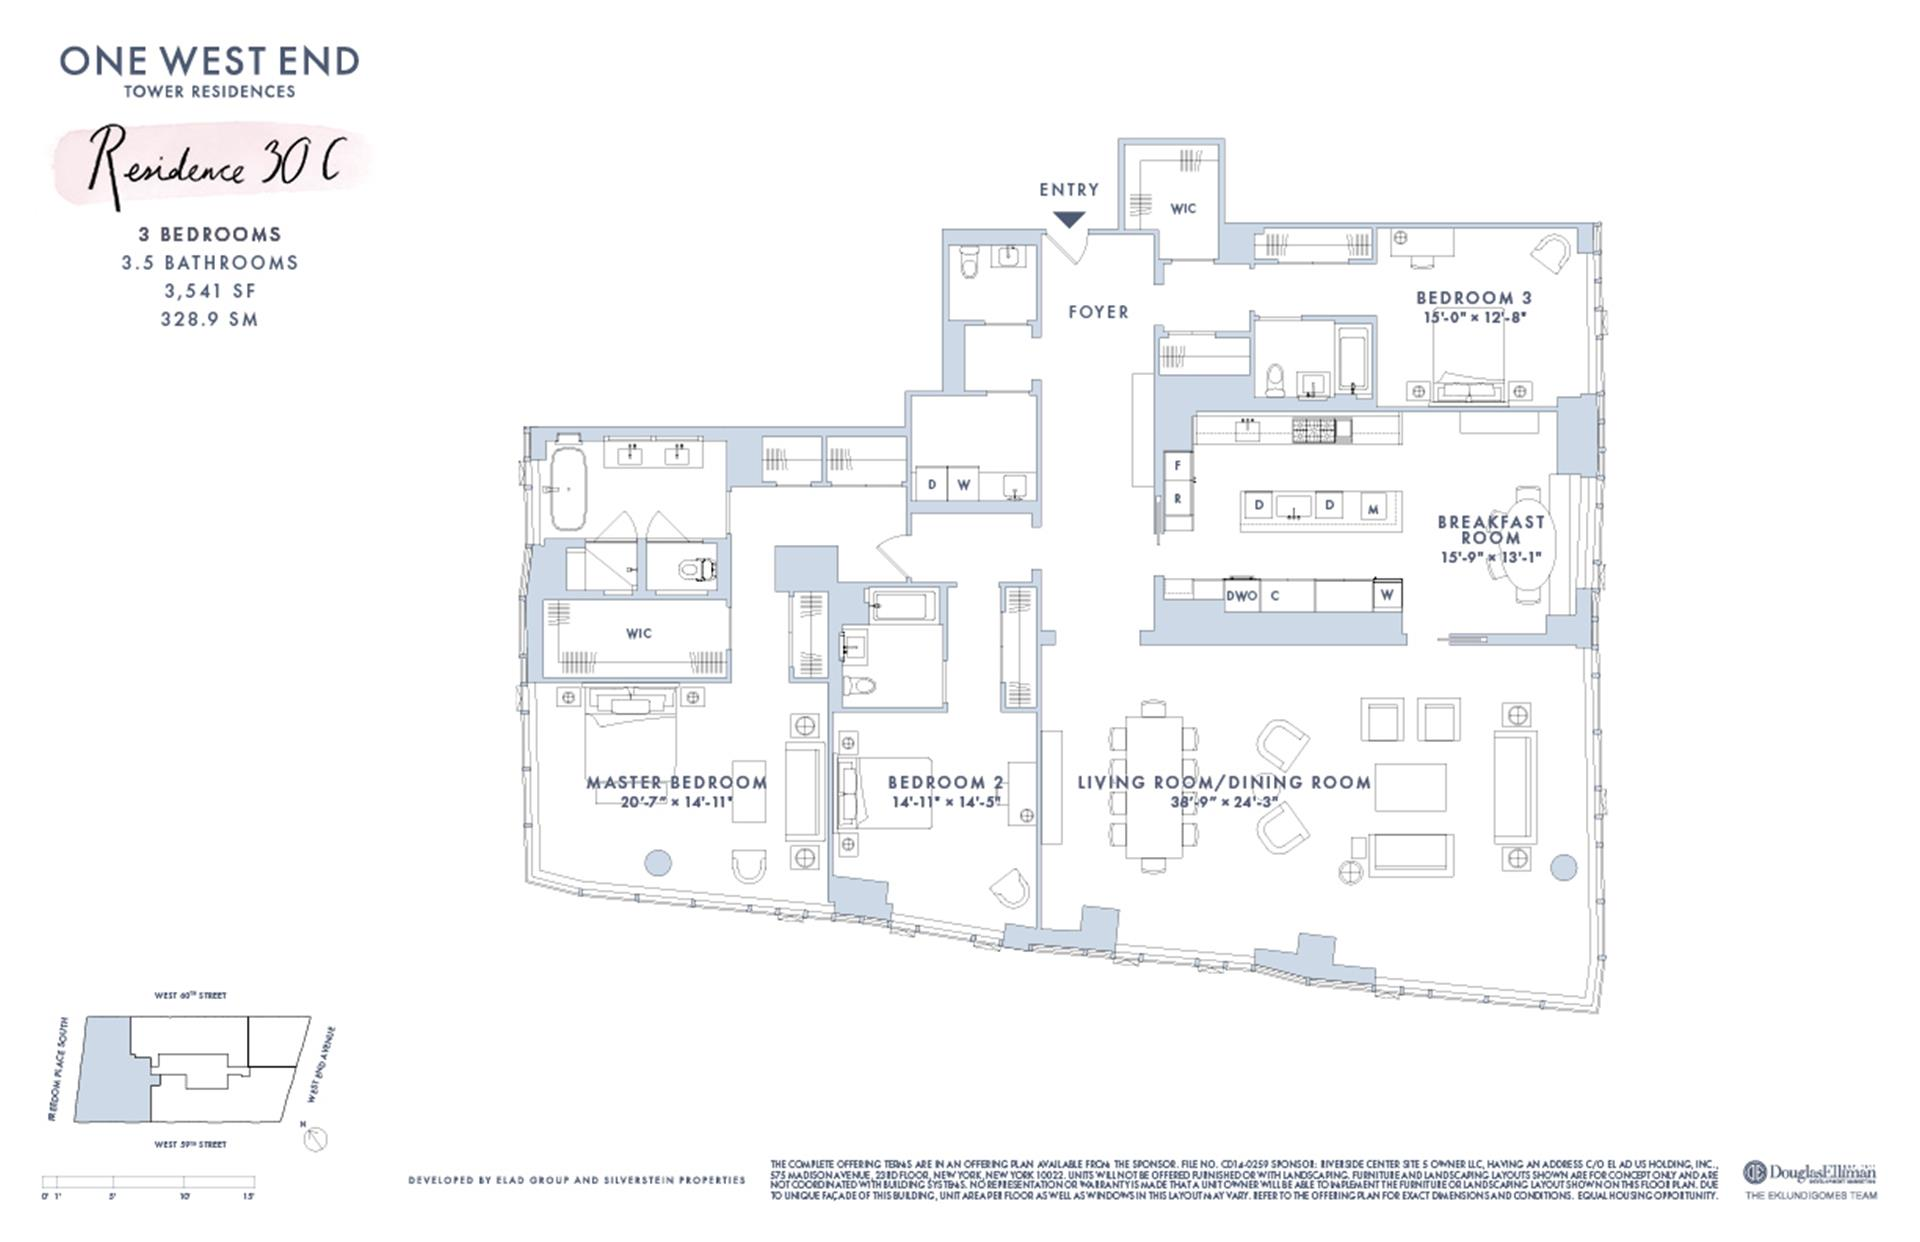 Floor plan of One West End, 1 West End Avenue, 30C - Upper West Side, New York